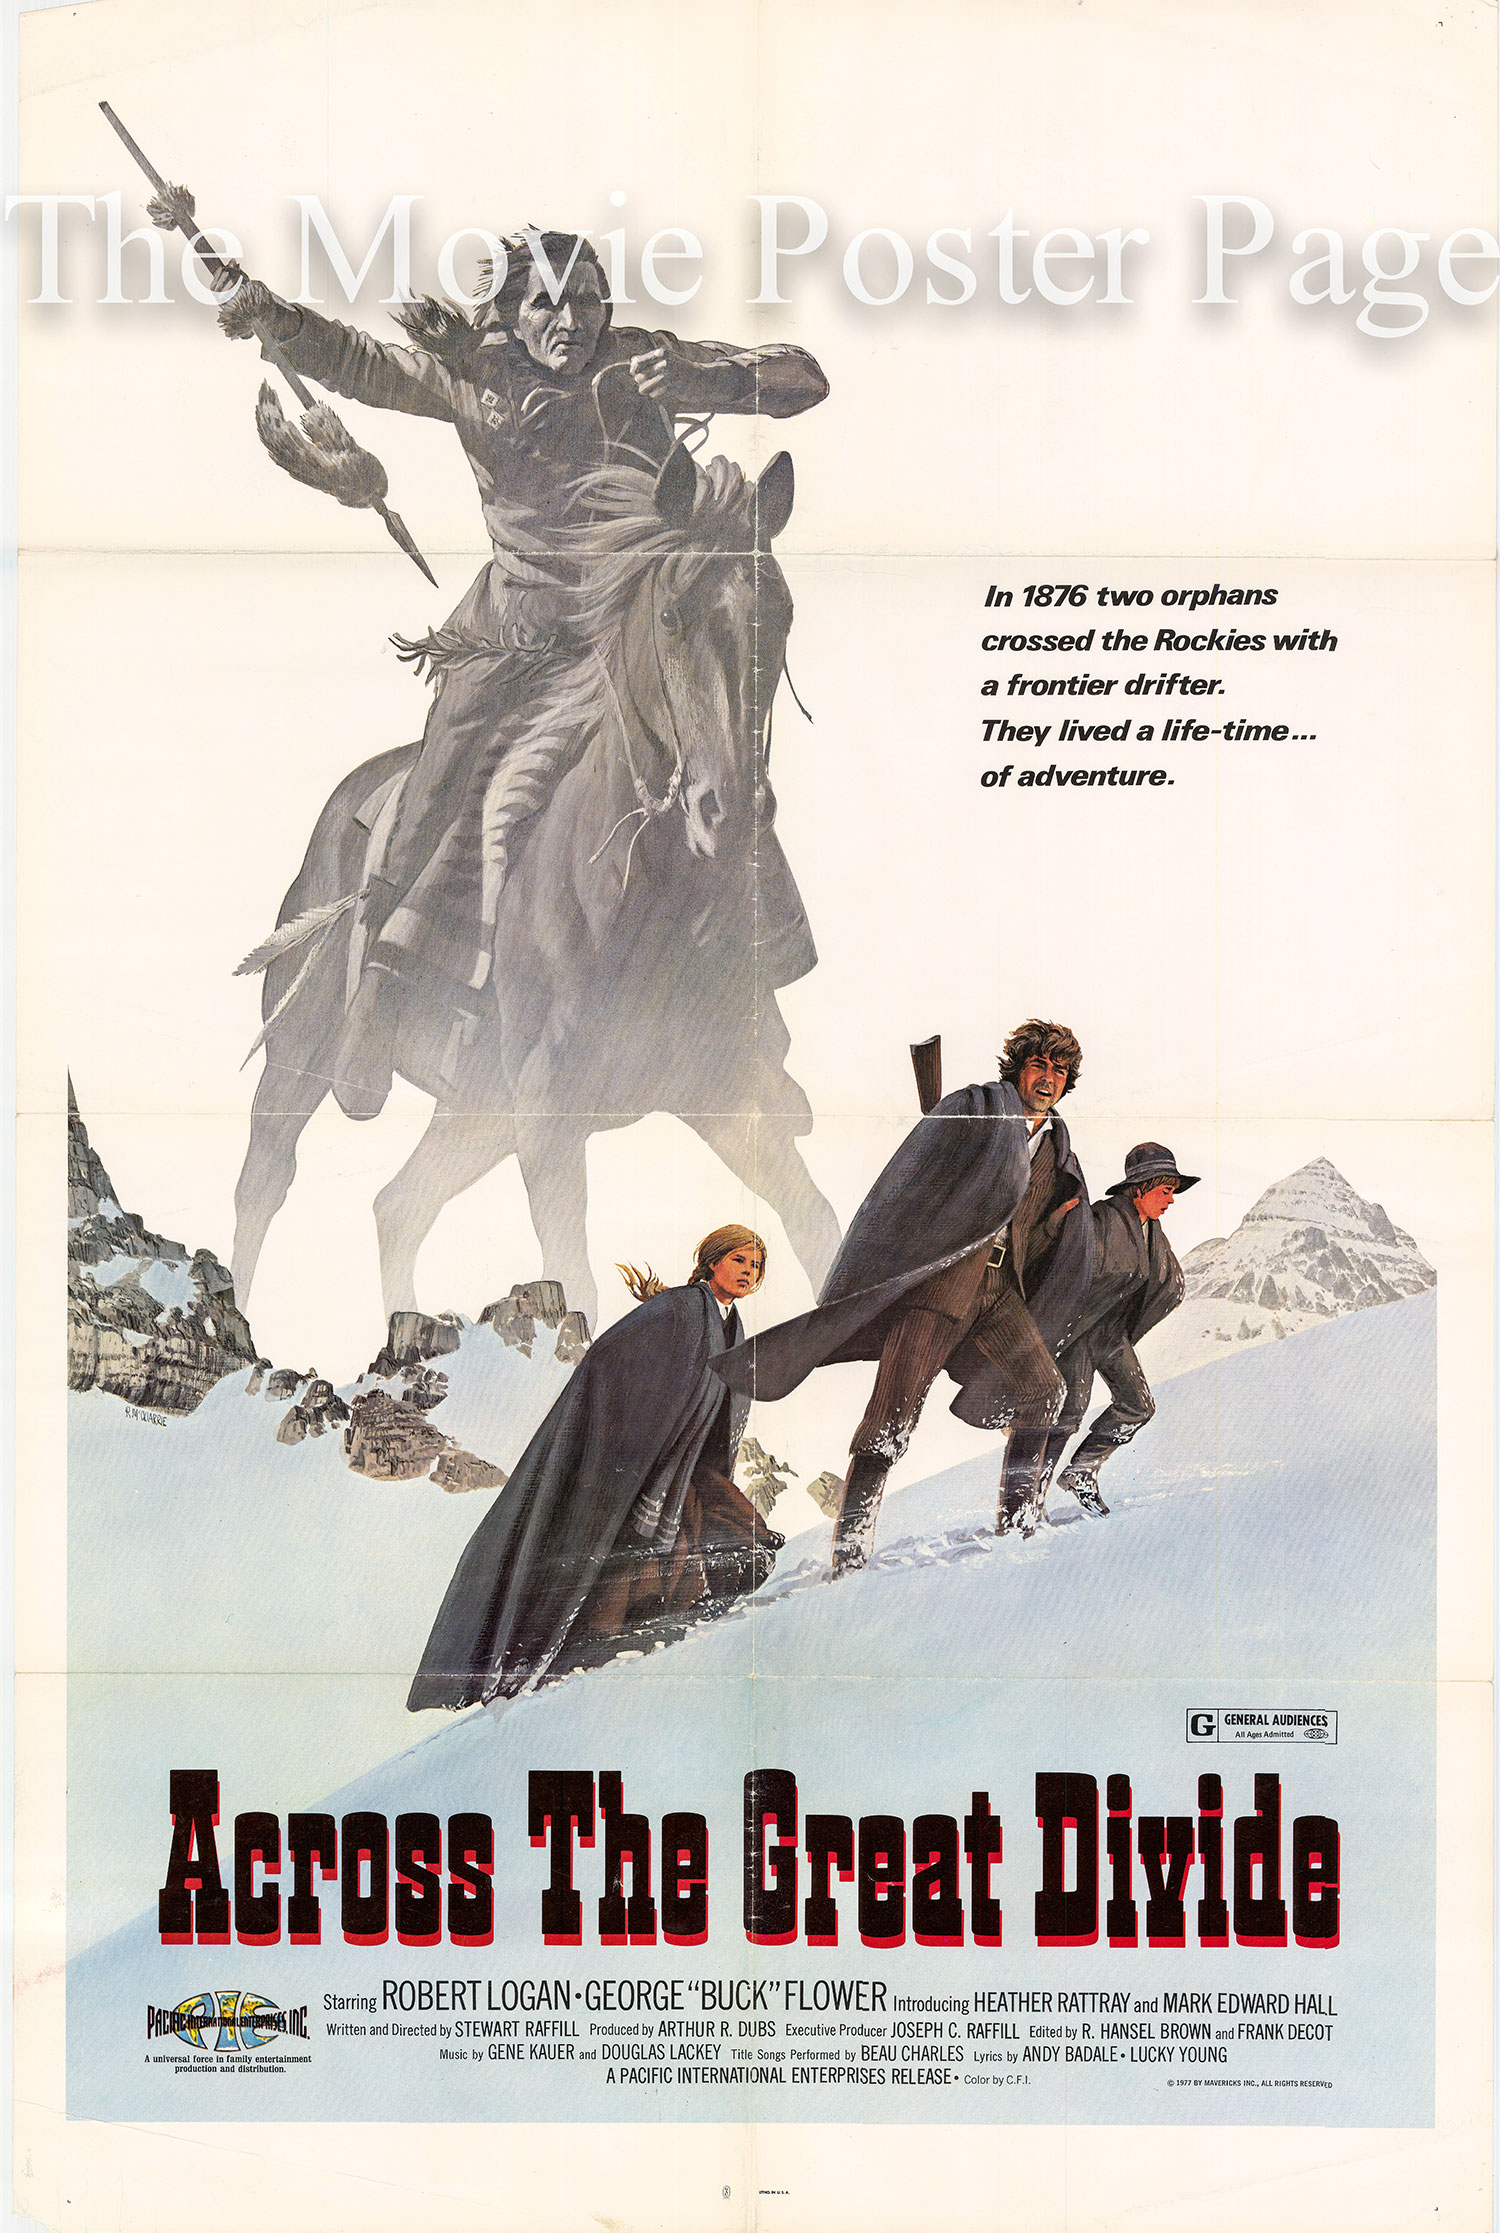 Pictured is a US one-sheet promotional poster for the 1977 Stewart Raffill film Across the Great Divide starring Robert Logan.